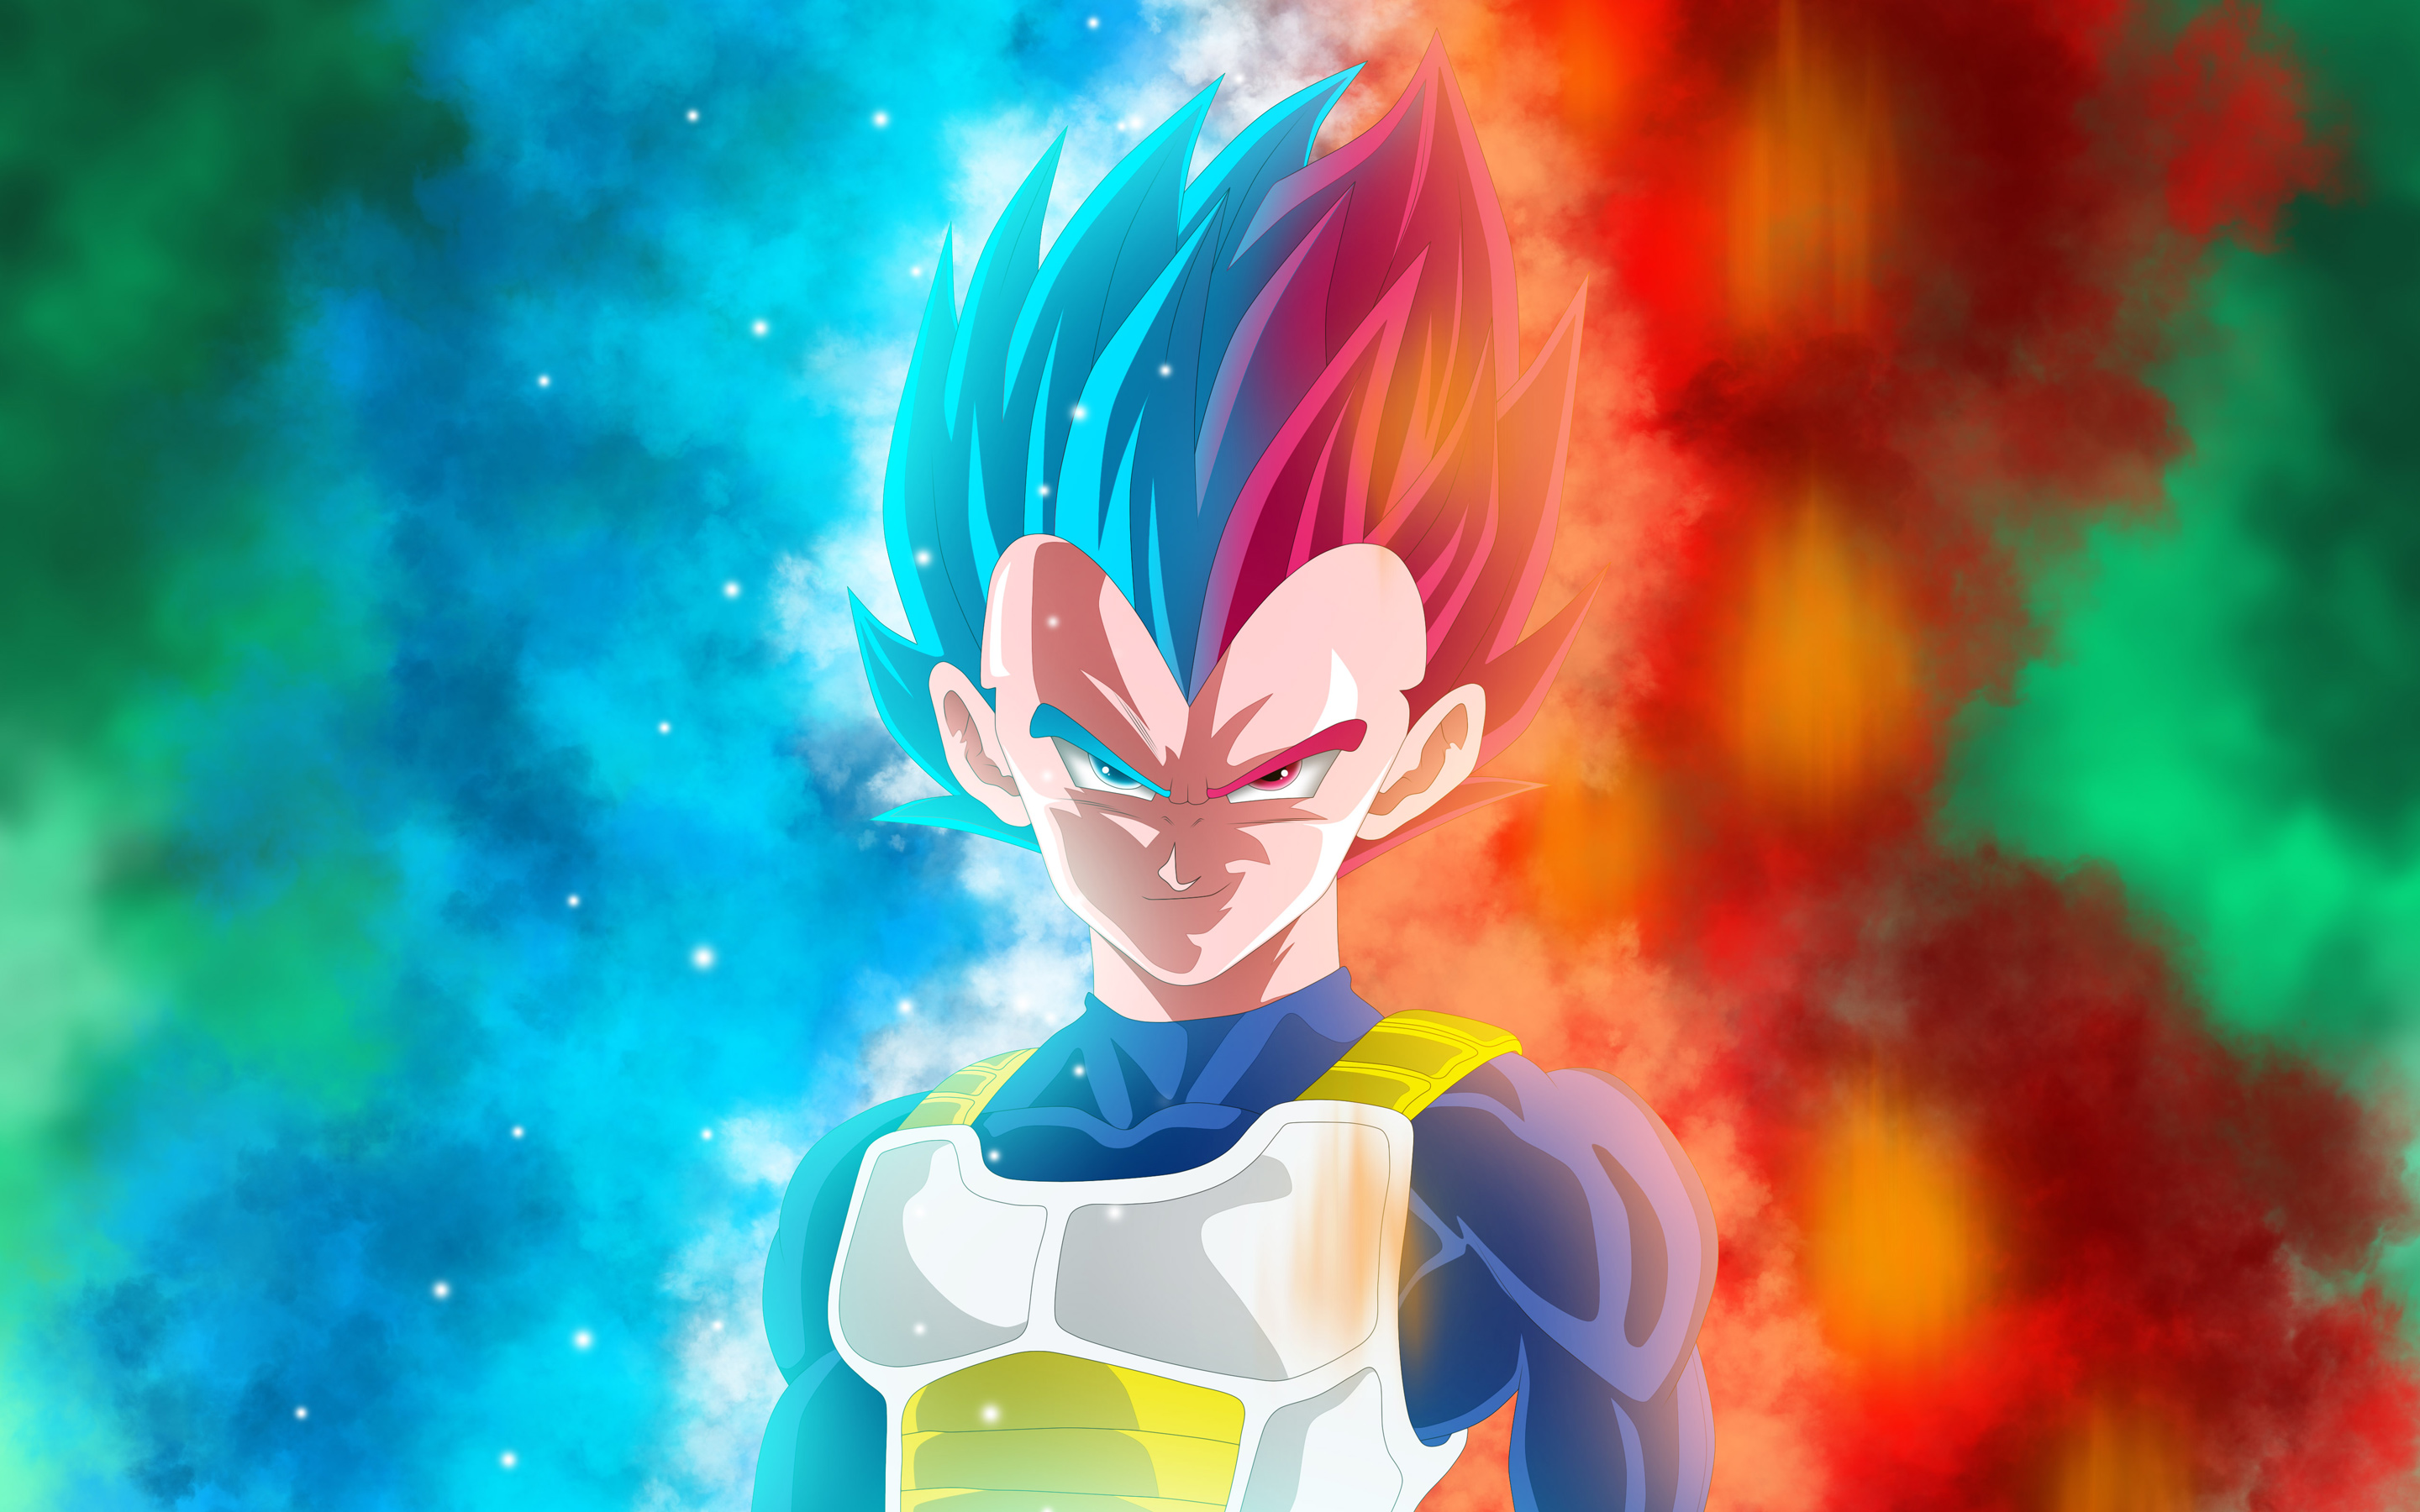 Dragon ball vegeta super. обои скачать